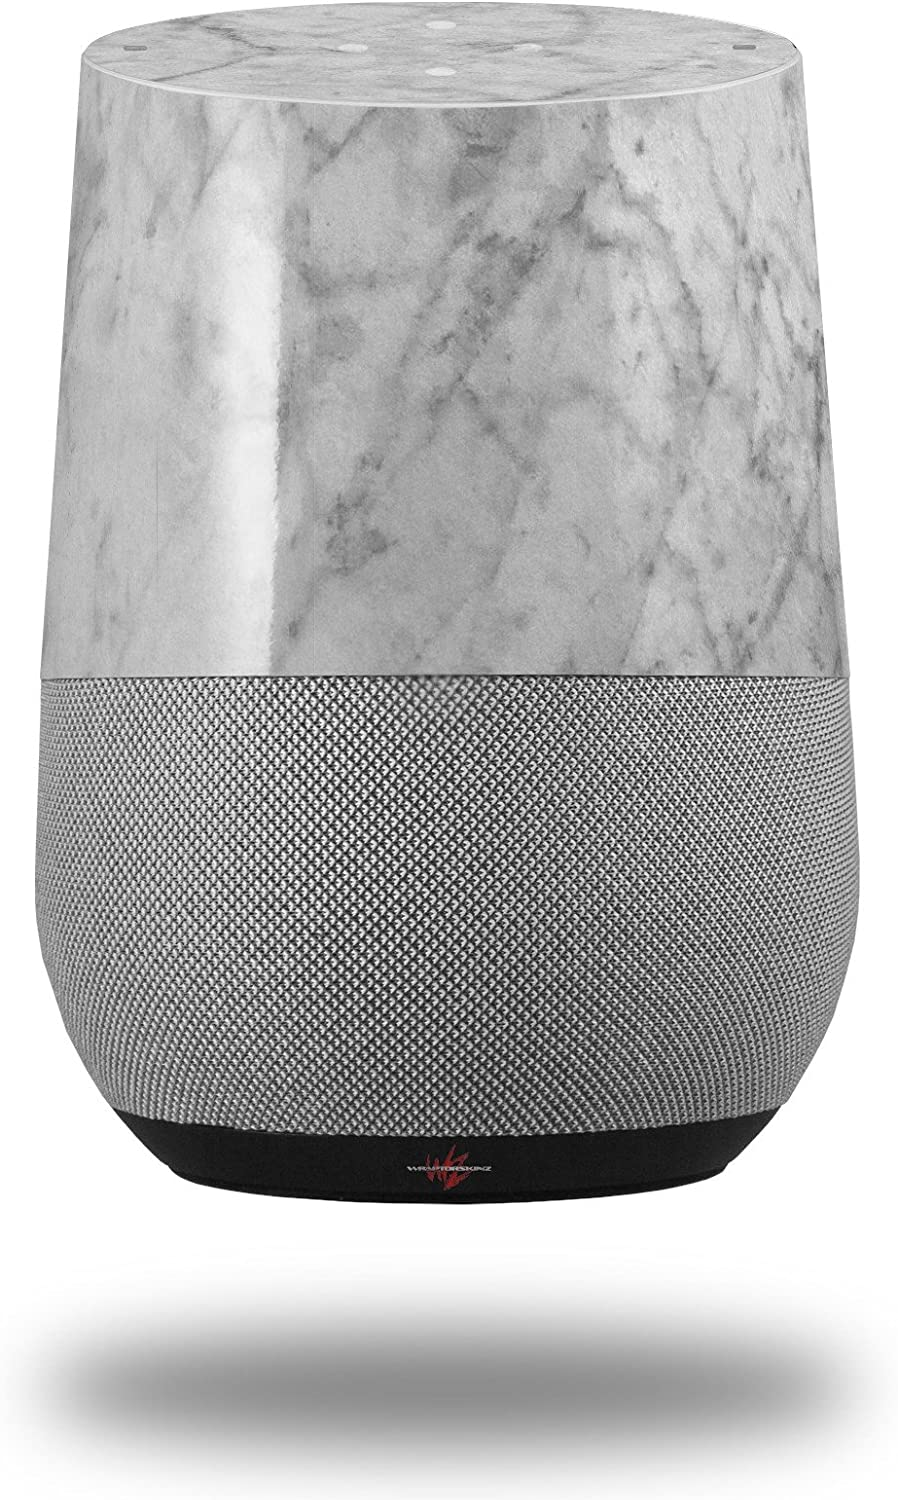 Decal Style Skin Wrap for Google Home Original - Marble Granite 09 White Gray (Google Home NOT Included) by WraptorSkinz